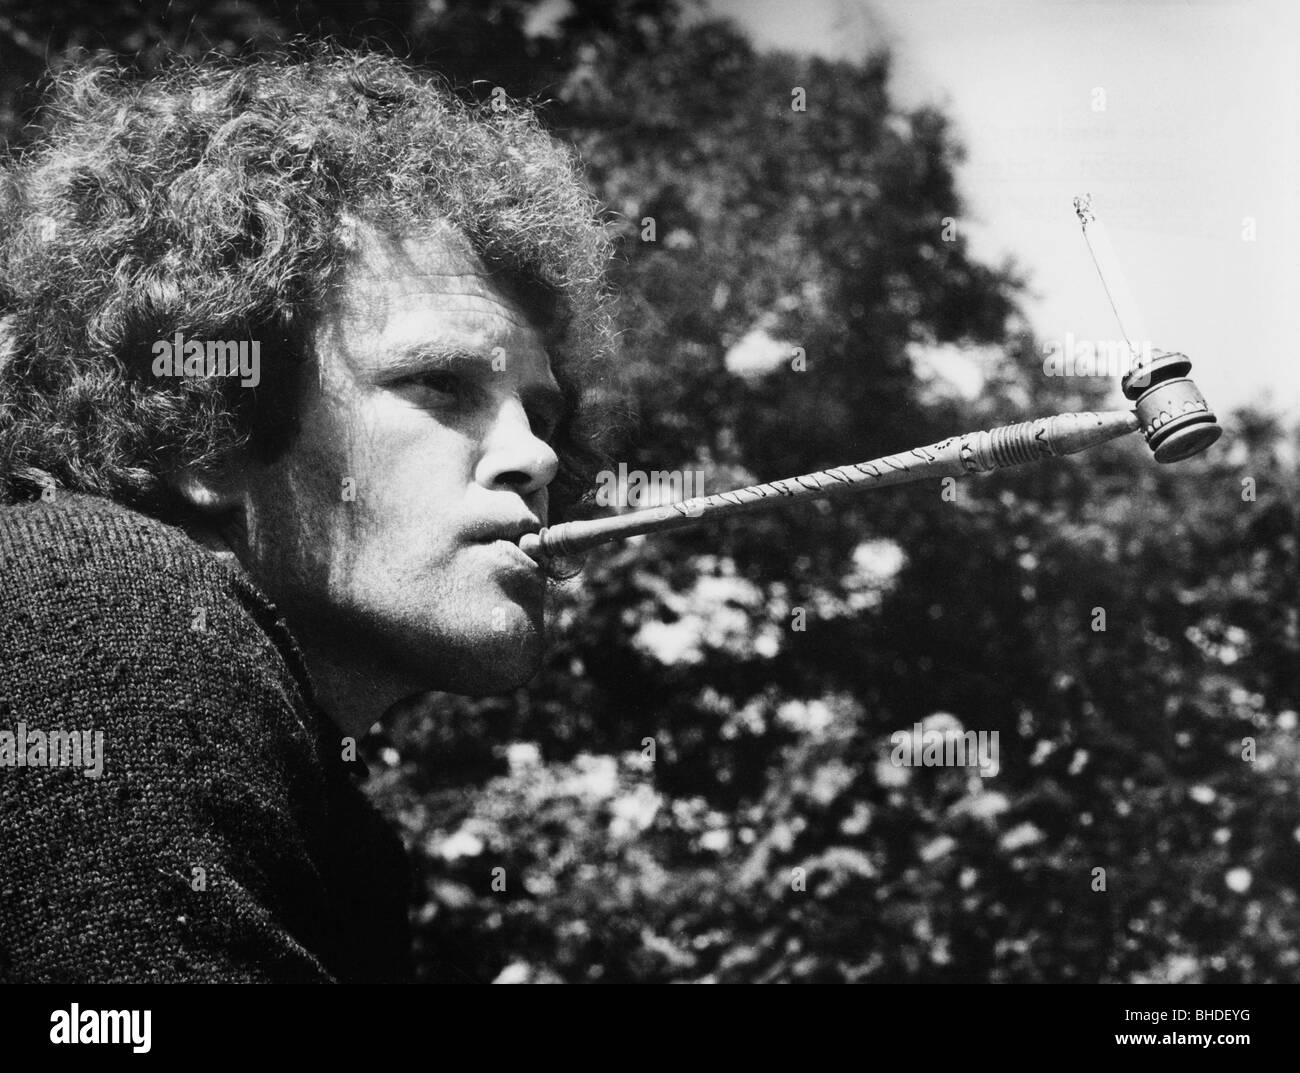 drug and dope, man with hash pipe, Munich, 1973, 20th century, 1970s, Germany, typical of the time, portrait, smoking, - Stock Image